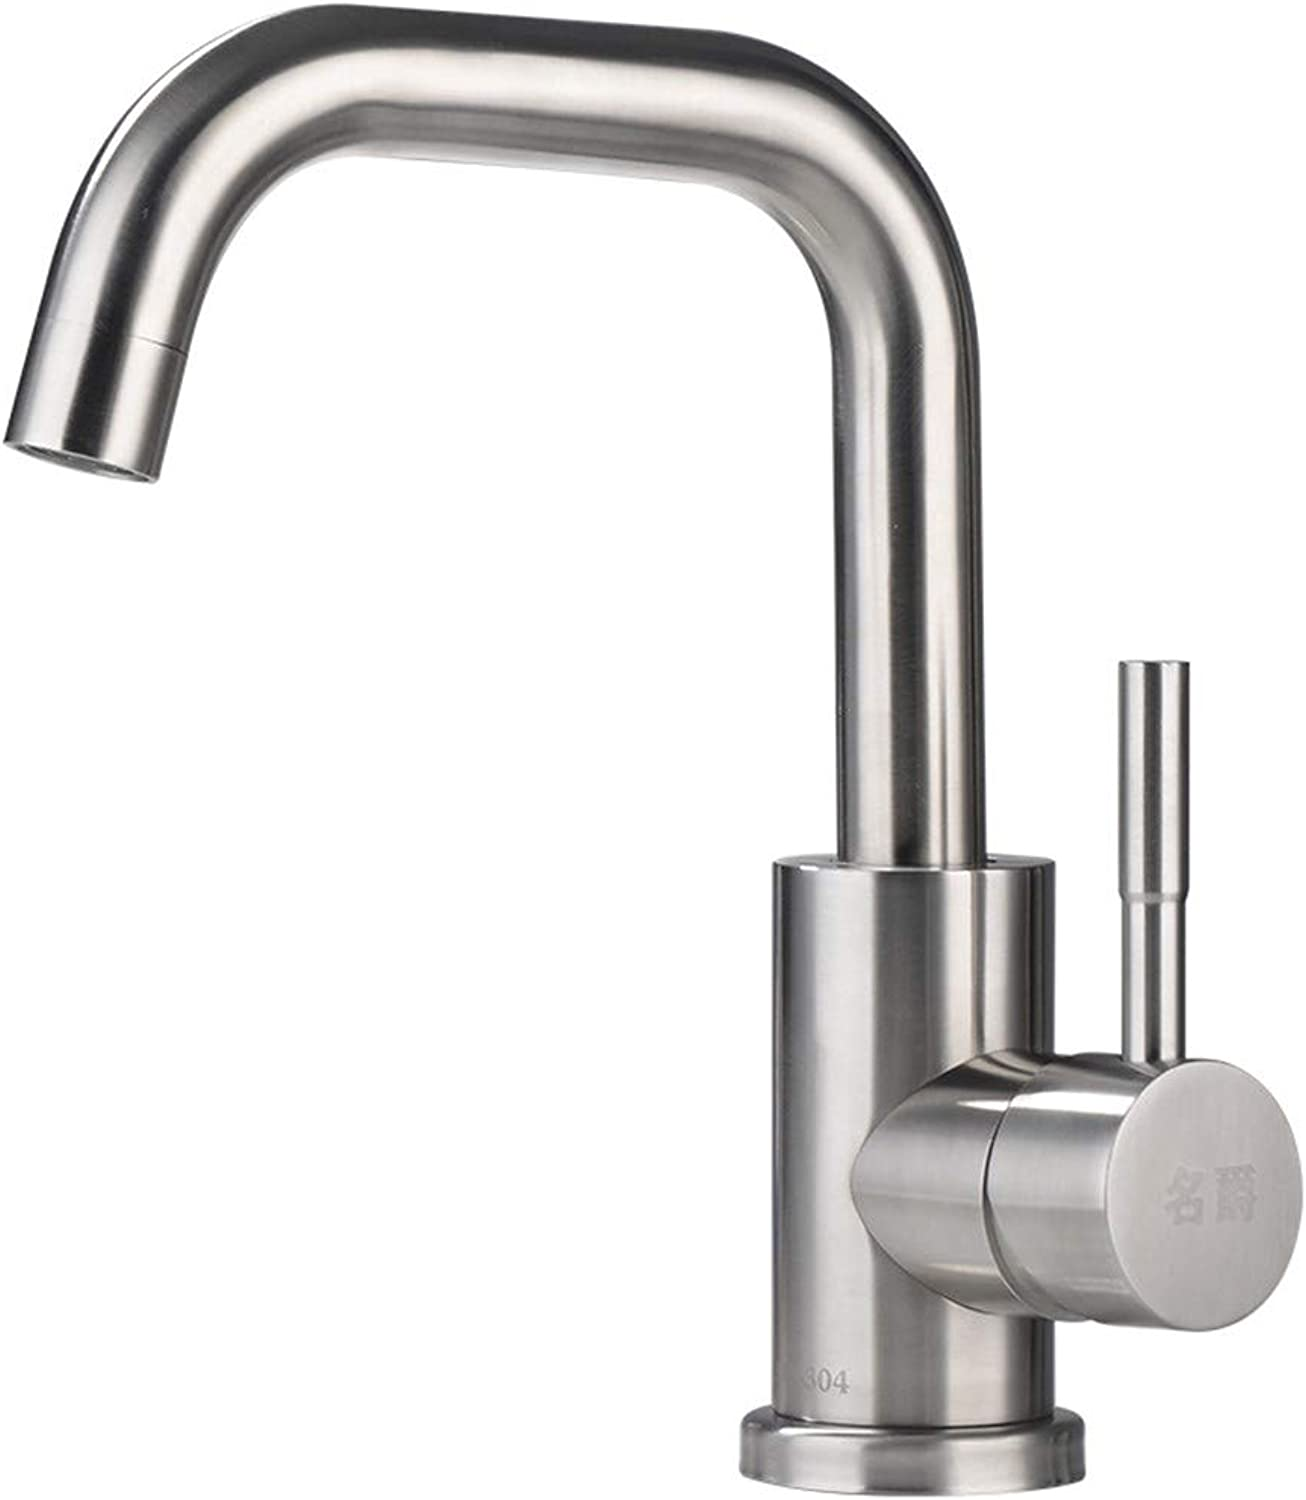 MulFaucet Faucet Water tap Taps Swivel Hoses Lead-Free 304 Stainless Steel Basin Bathroom hot and Cold